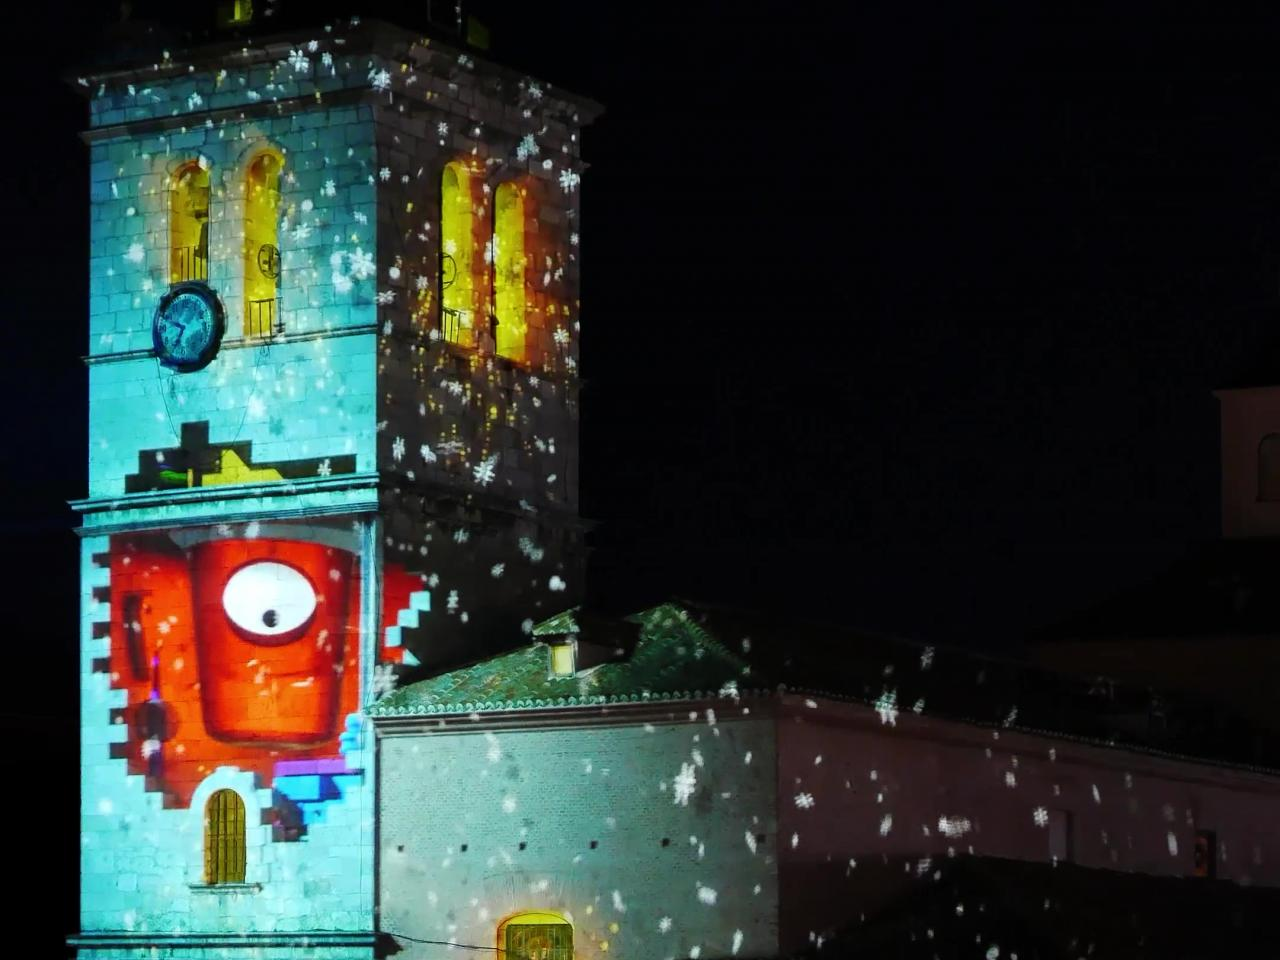 Mapping Torrejón Mágicas Navidades 2018 - Magic Christmas Torrejon 2018